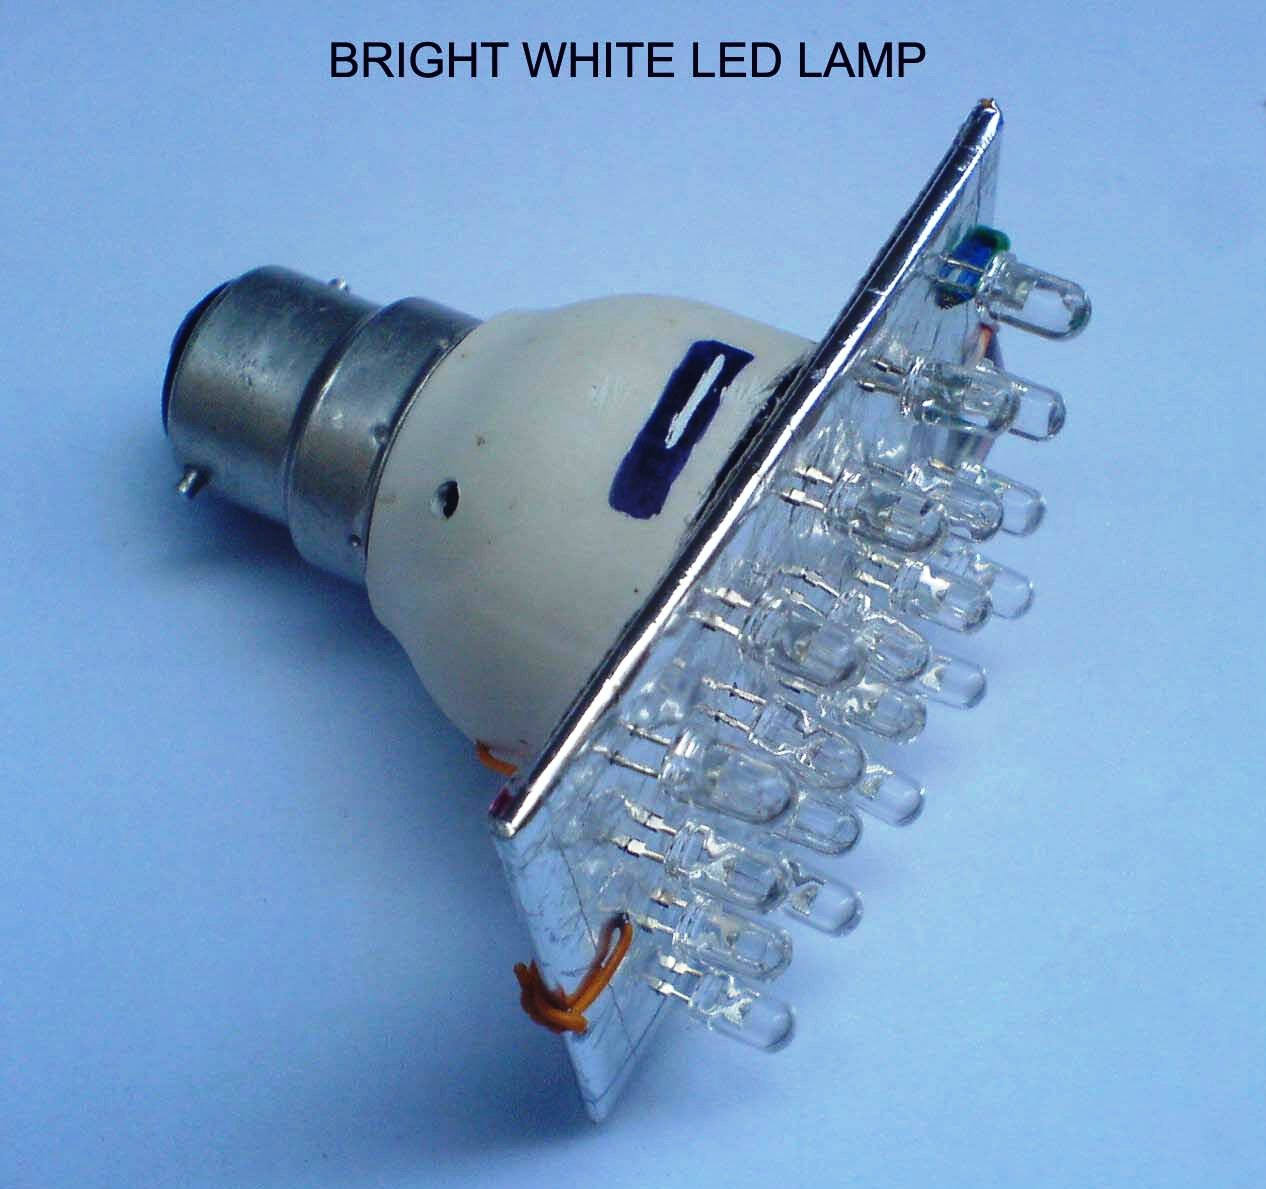 vasu bhat39s electronic hobby projects bright white led lampvasu bhat\\u0027s electronic hobby projects bright white led lampvasu bhat39s electronic hobby projects bright